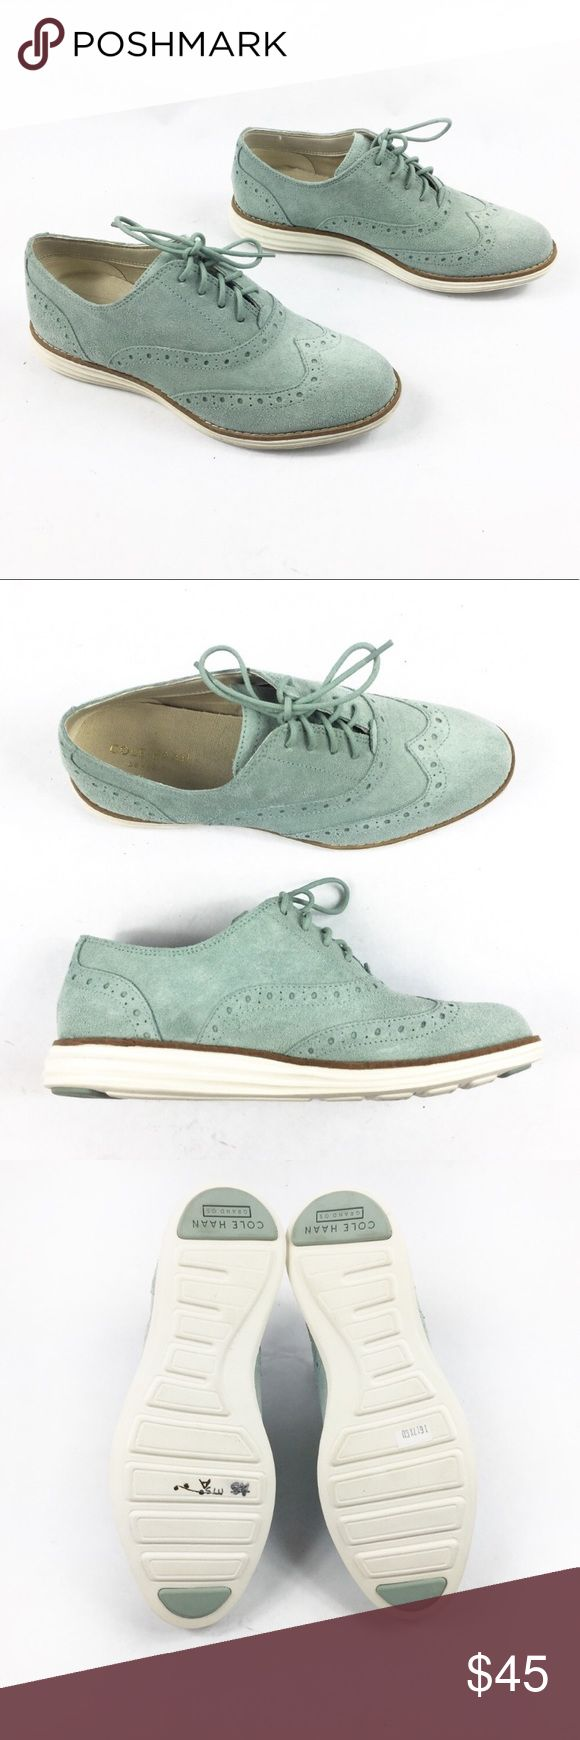 COLE HAAN GRAND OS SUEDE OXFORD MINT SHOES COLE HAAN GRAND OS SUEDE OXFORD MINT SHOES in size 5. New, no. If, no flaws. Waterproof sole, grand os Cole haan technology. Cole Haan Shoes Flats & Loafers